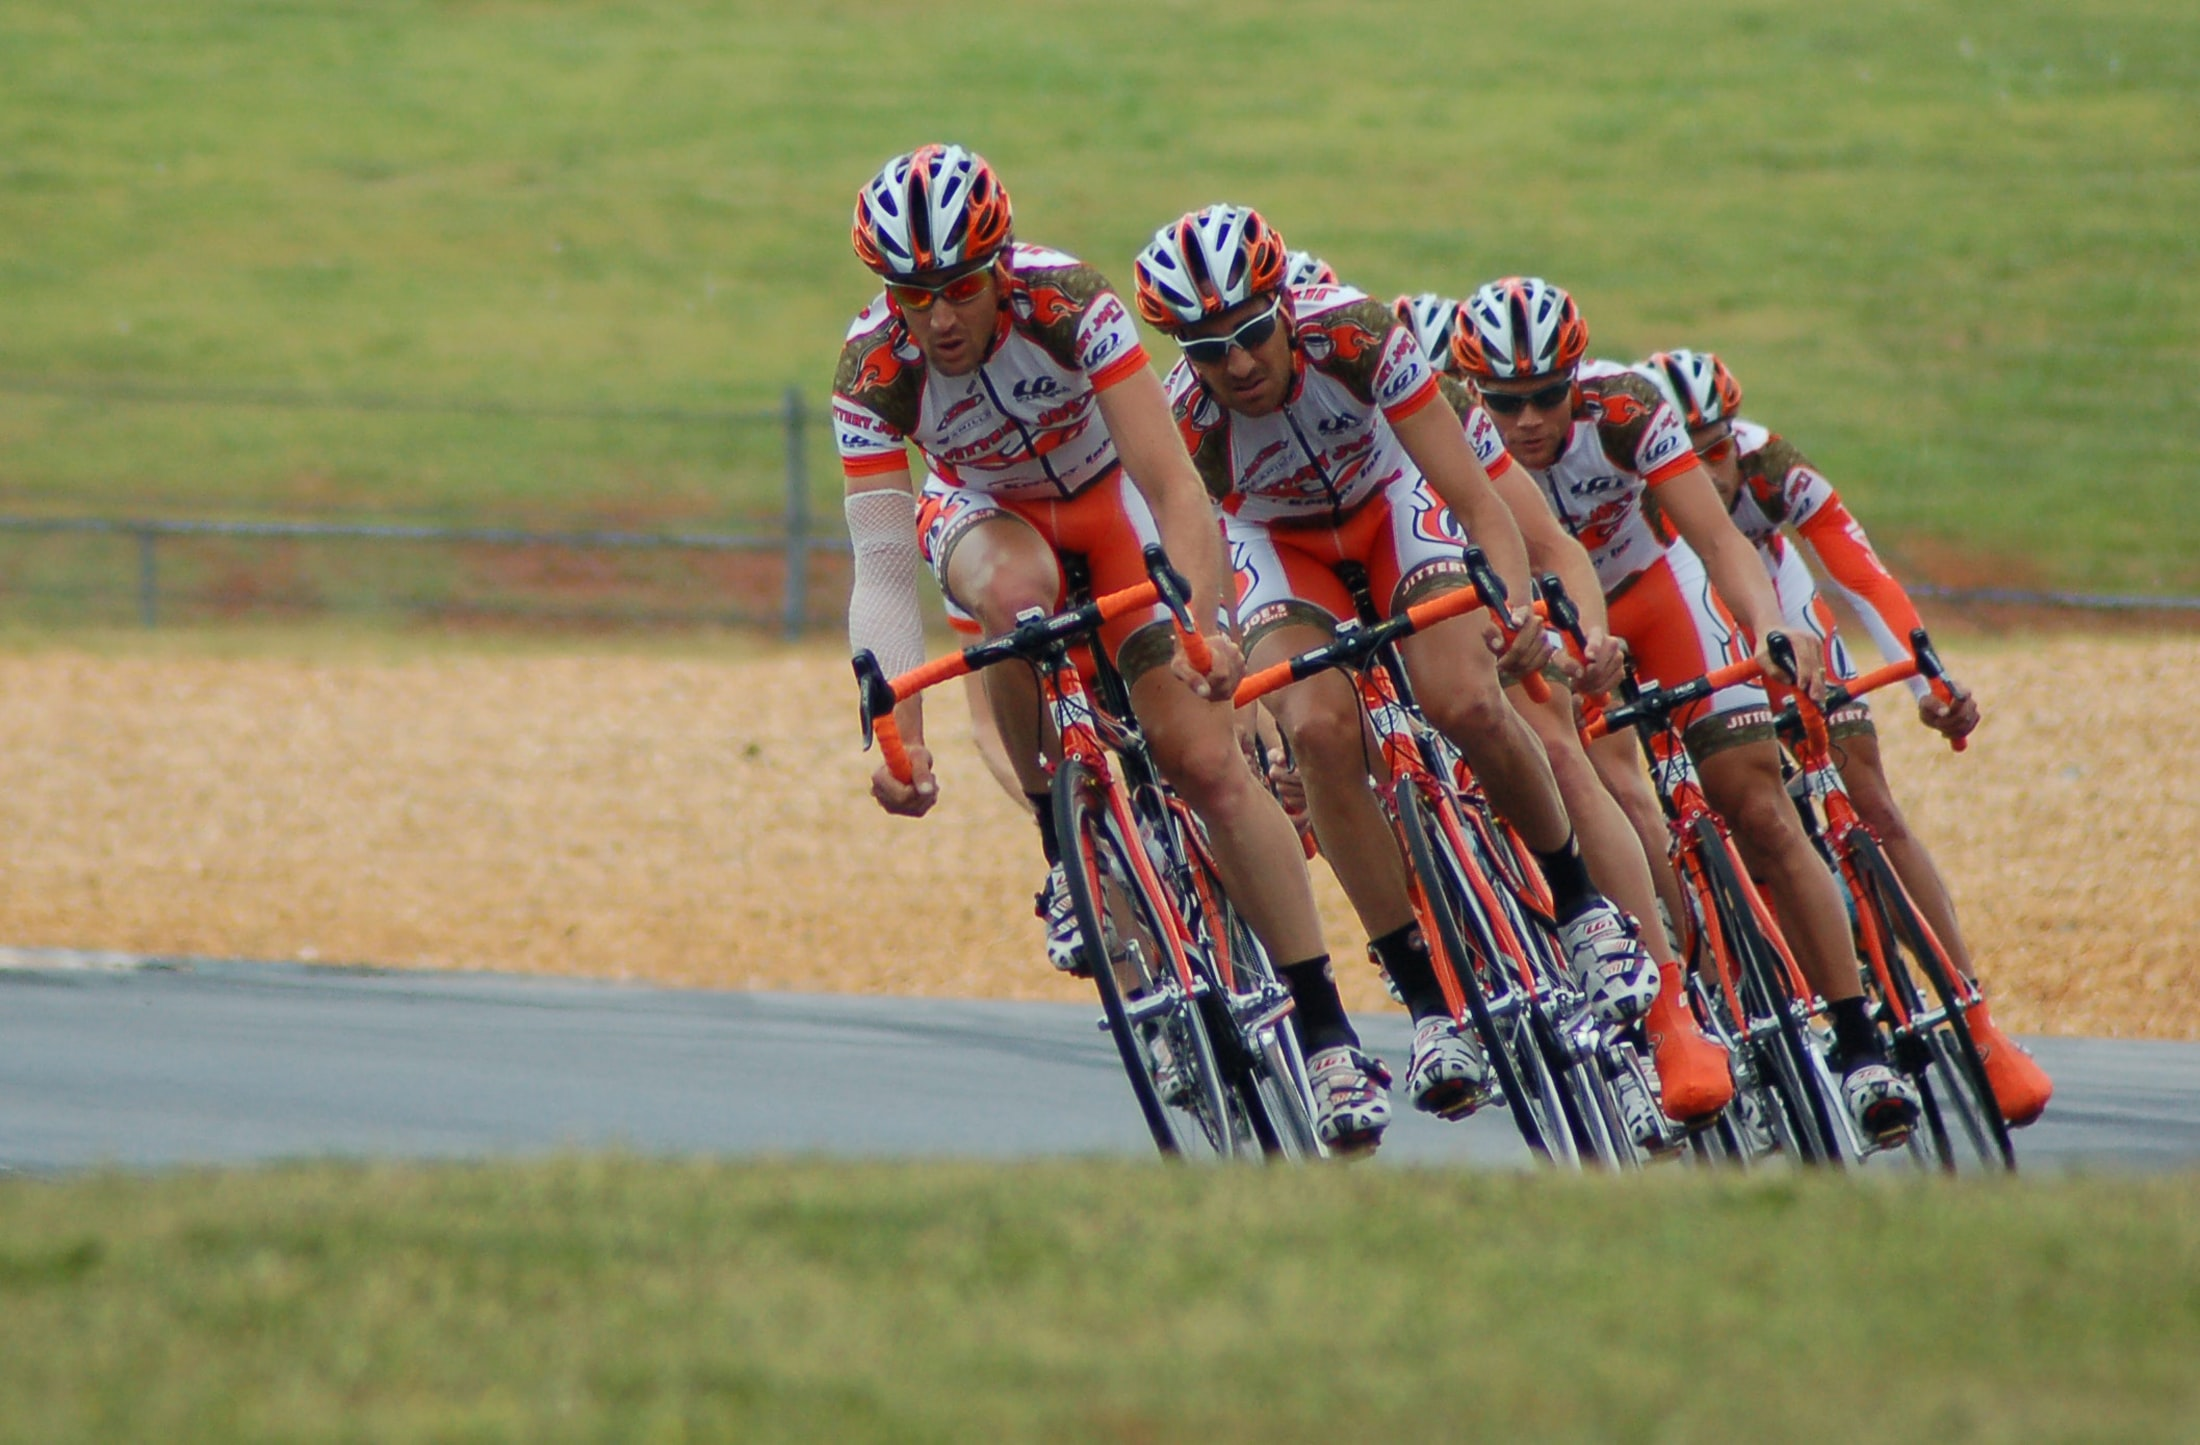 A team of four cyclists driving at the Road Atlanta bike course